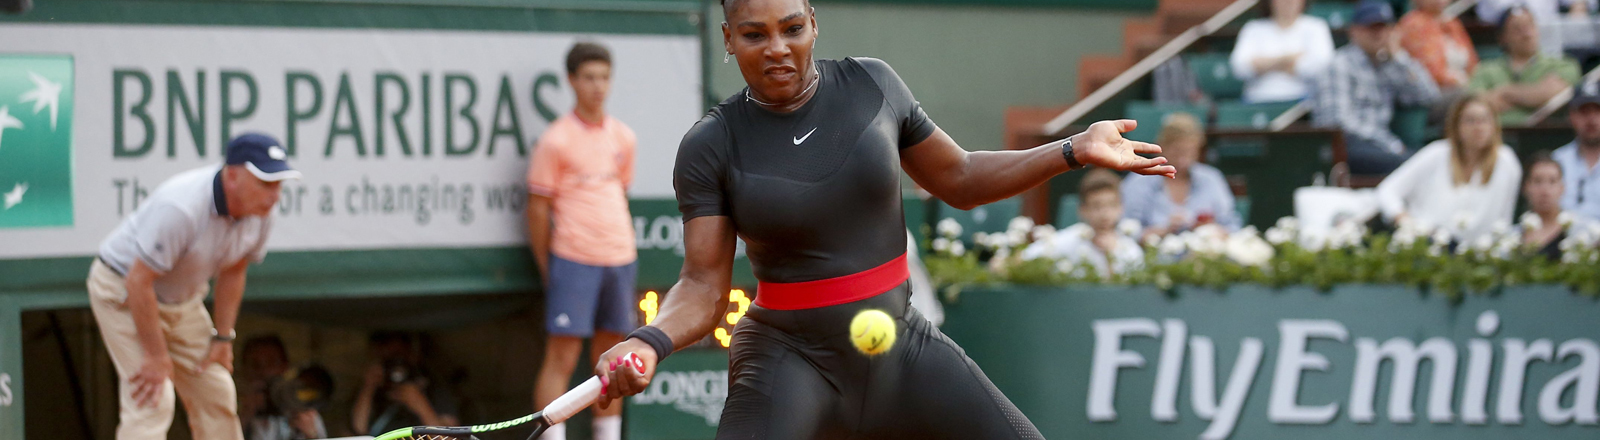 Serena Williams im Catsuit bei den French Open 2018